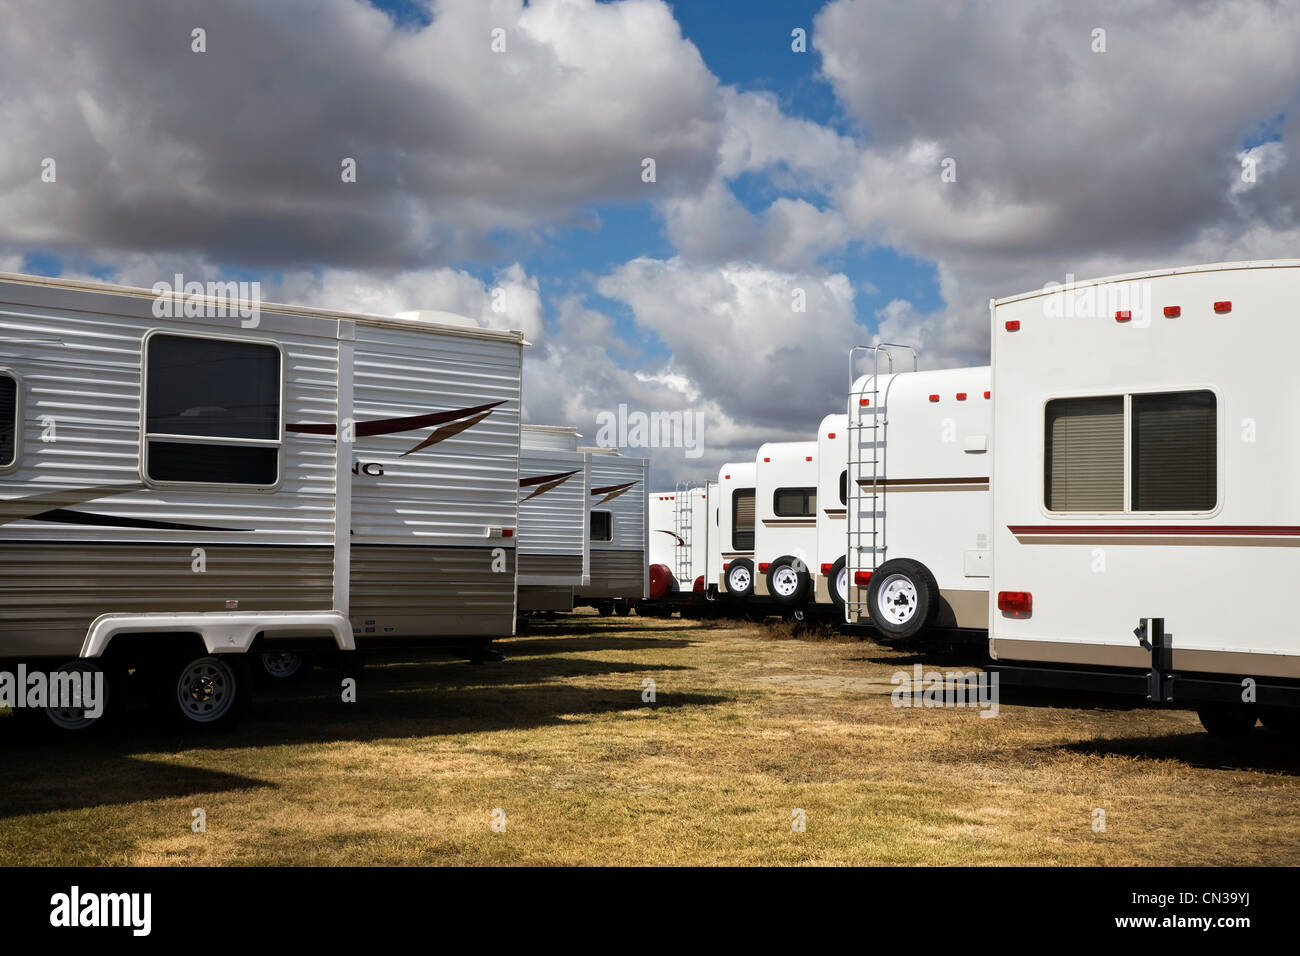 Trailers for sale - Stock Image